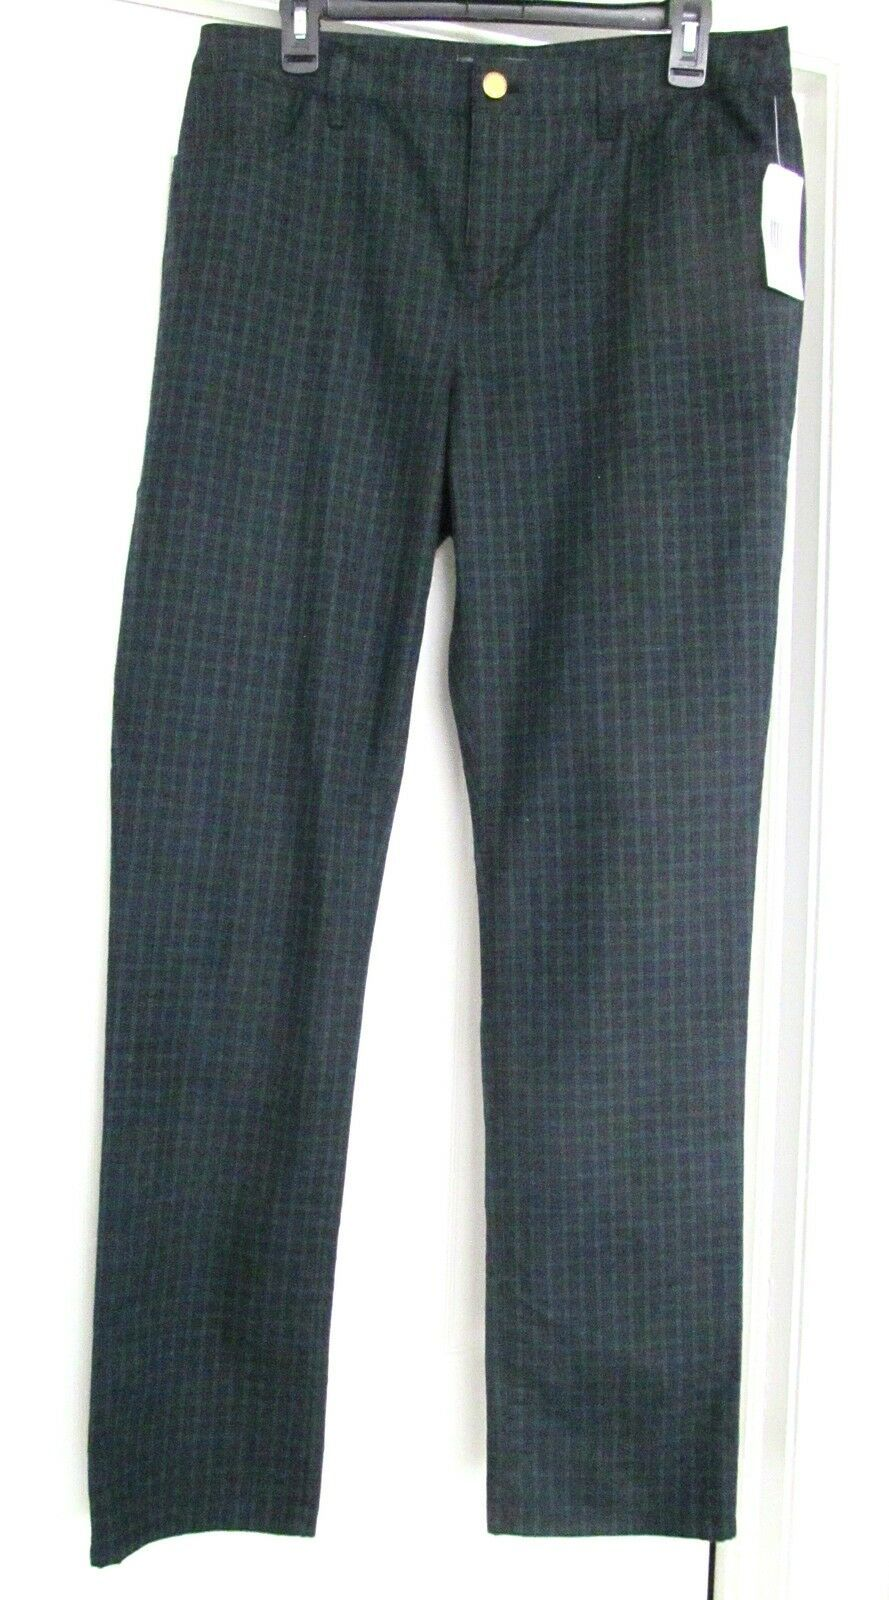 RALPH LAUREN Jean Style Pants Tartan Look 5 Pkt Cotton Blend Women's 10 NEW